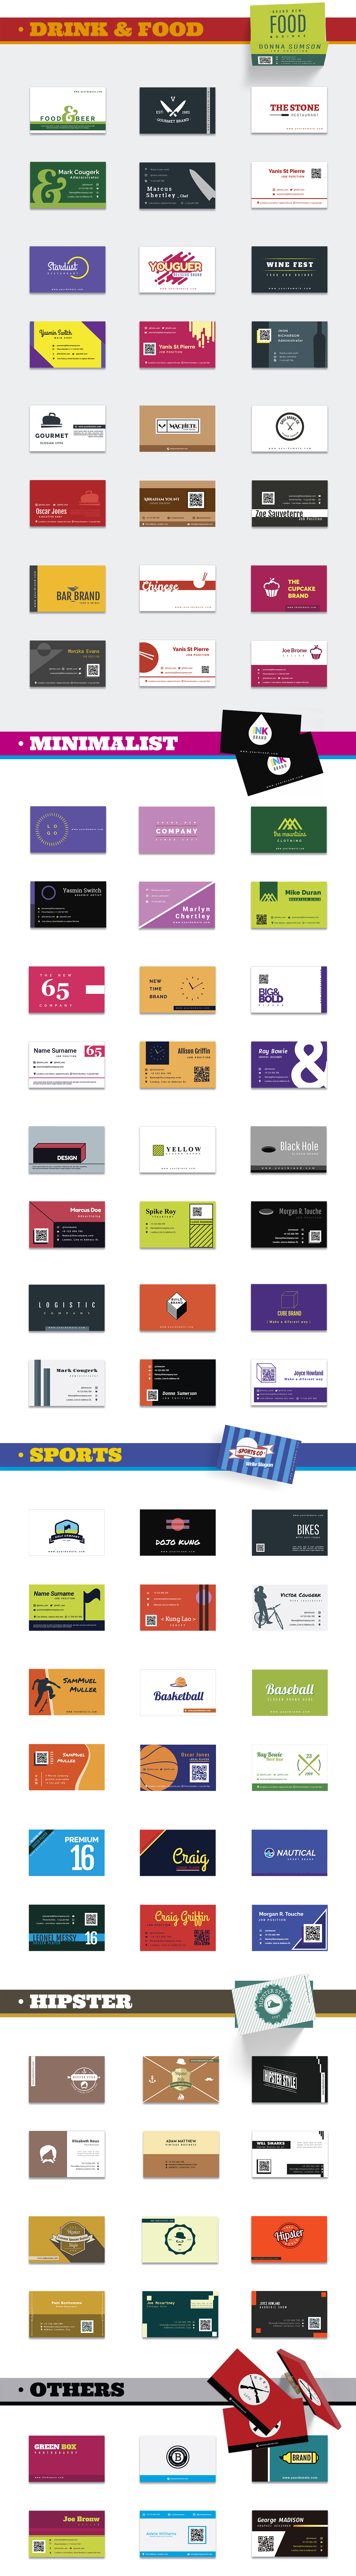 1000 Business Card Templates Pack Designshock Shockfamily